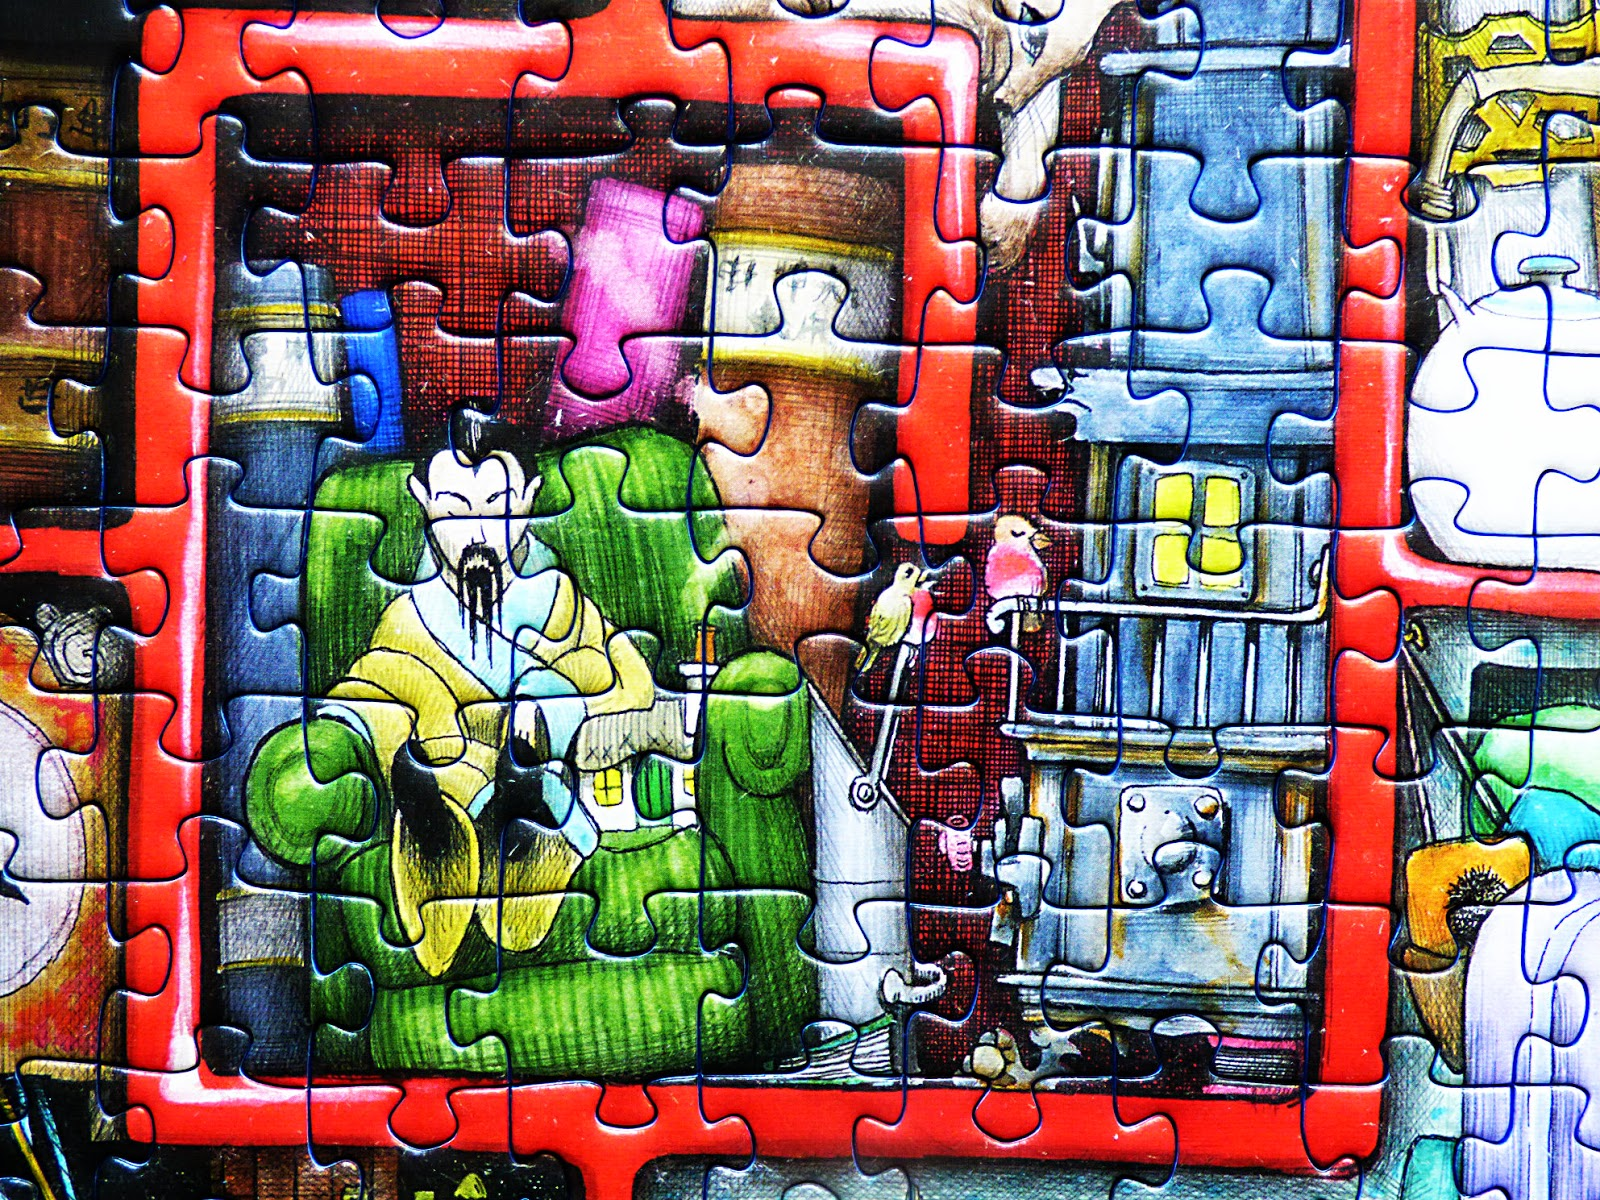 chez maximka the red box 1000 piece puzzle from ravensburger